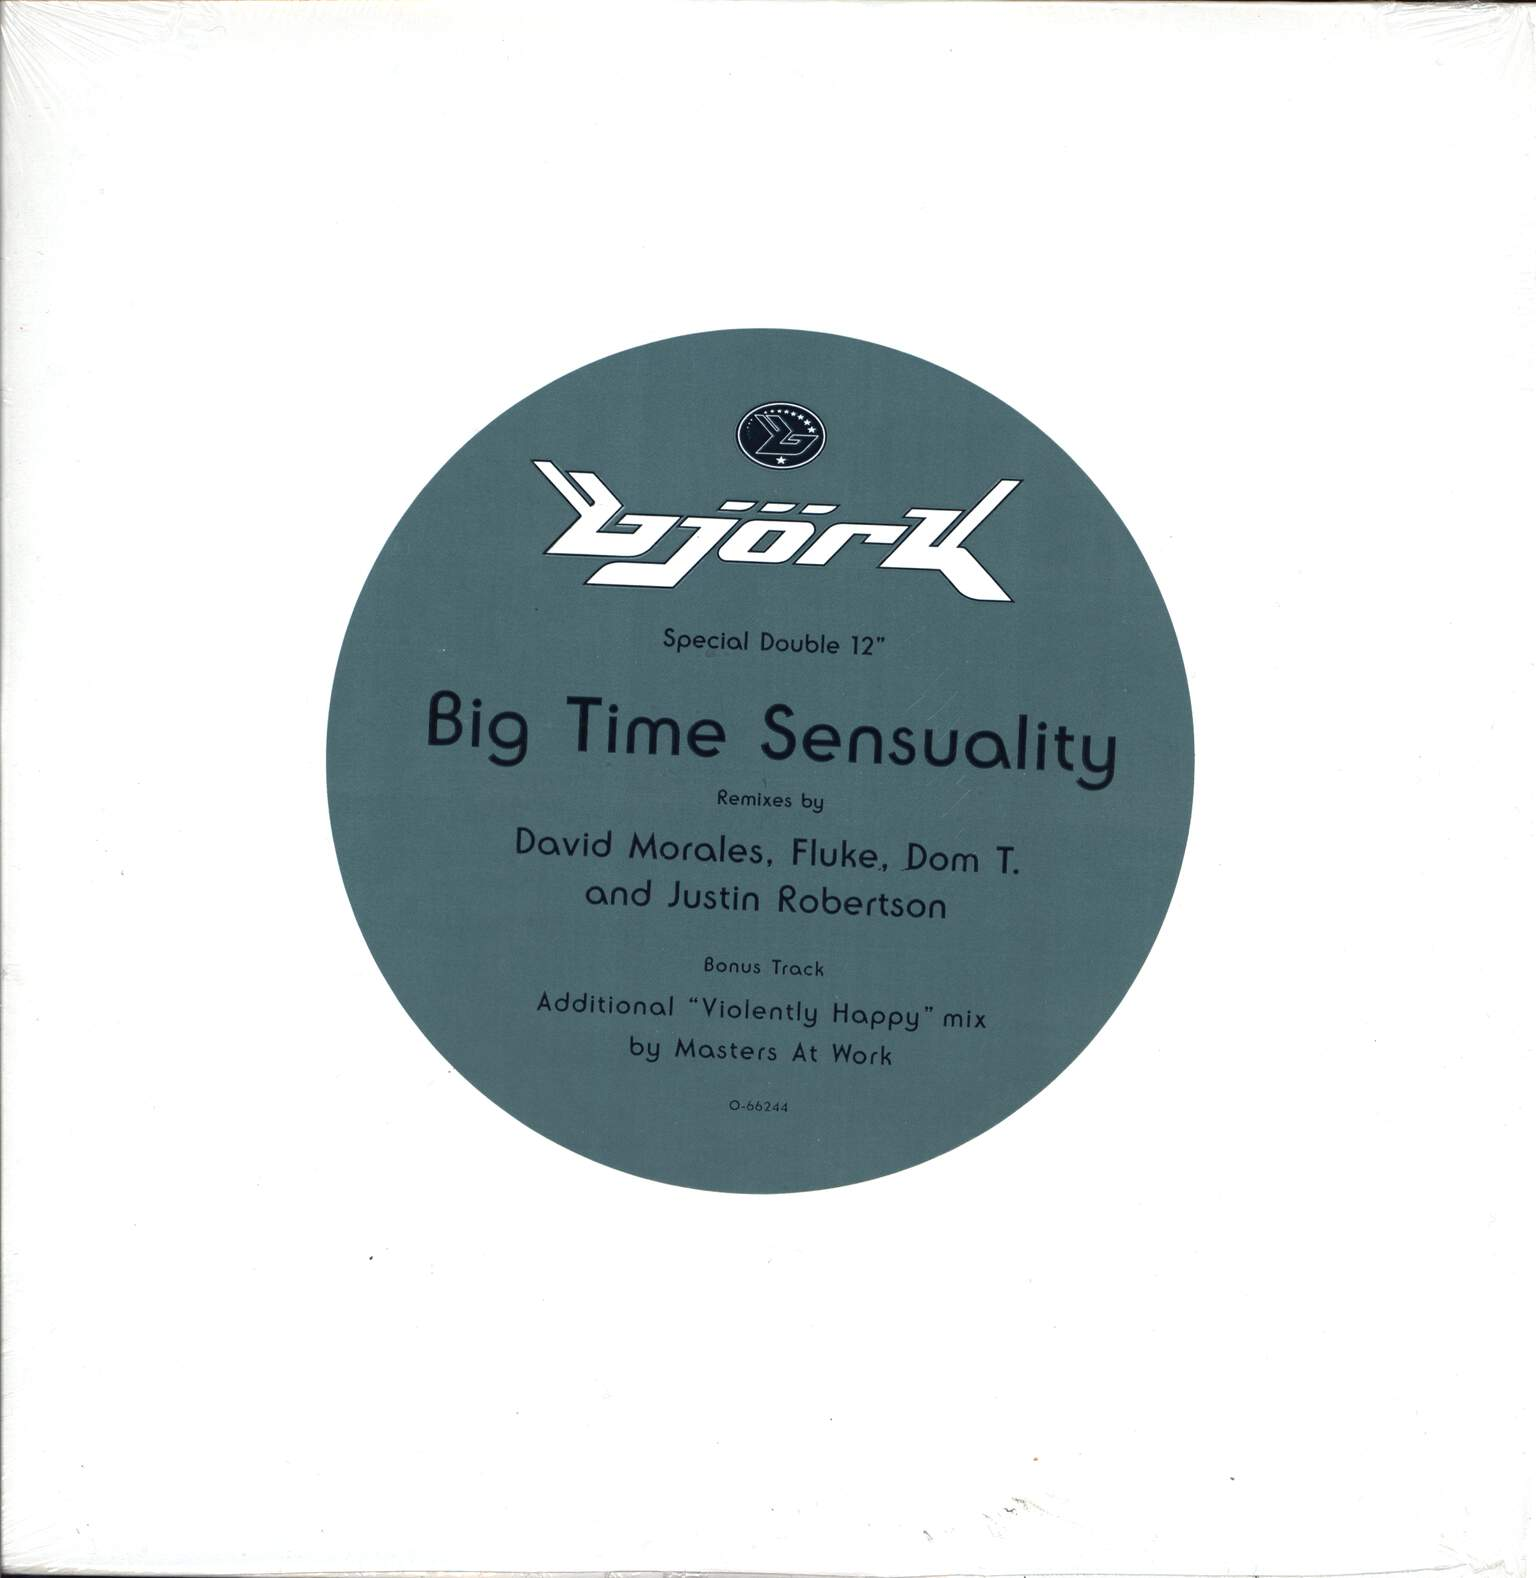 "Björk: Big Time Sensuality, 12"" Maxi Single (Vinyl)"